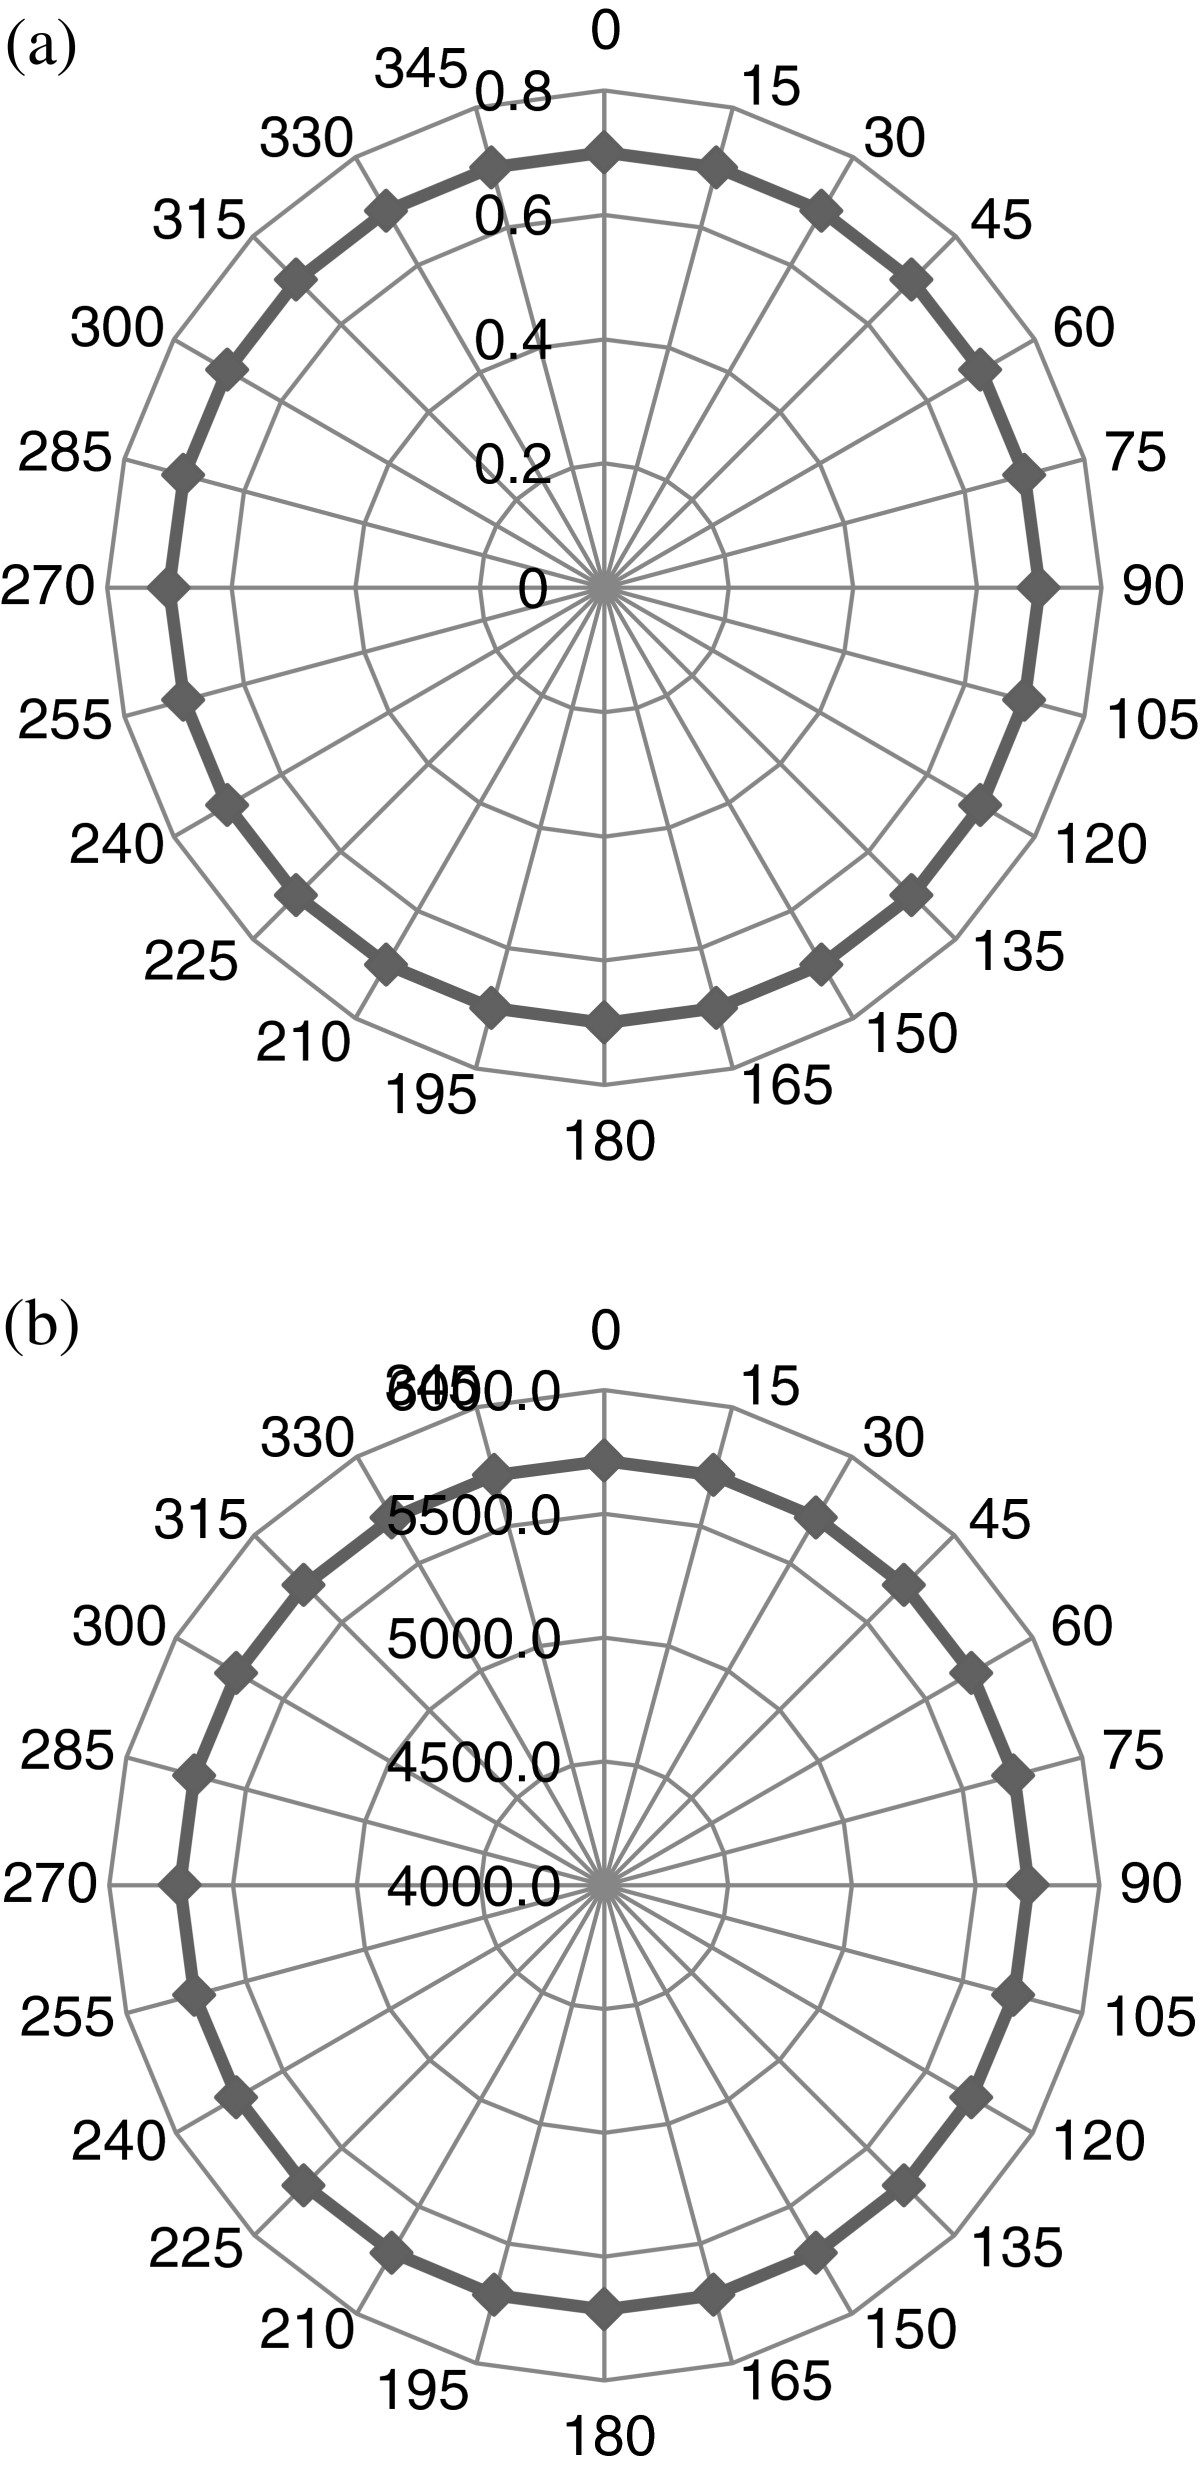 http://static-content.springer.com/image/art%3A10.1186%2F2050-5736-1-5/MediaObjects/40349_2012_Article_6_Fig5_HTML.jpg